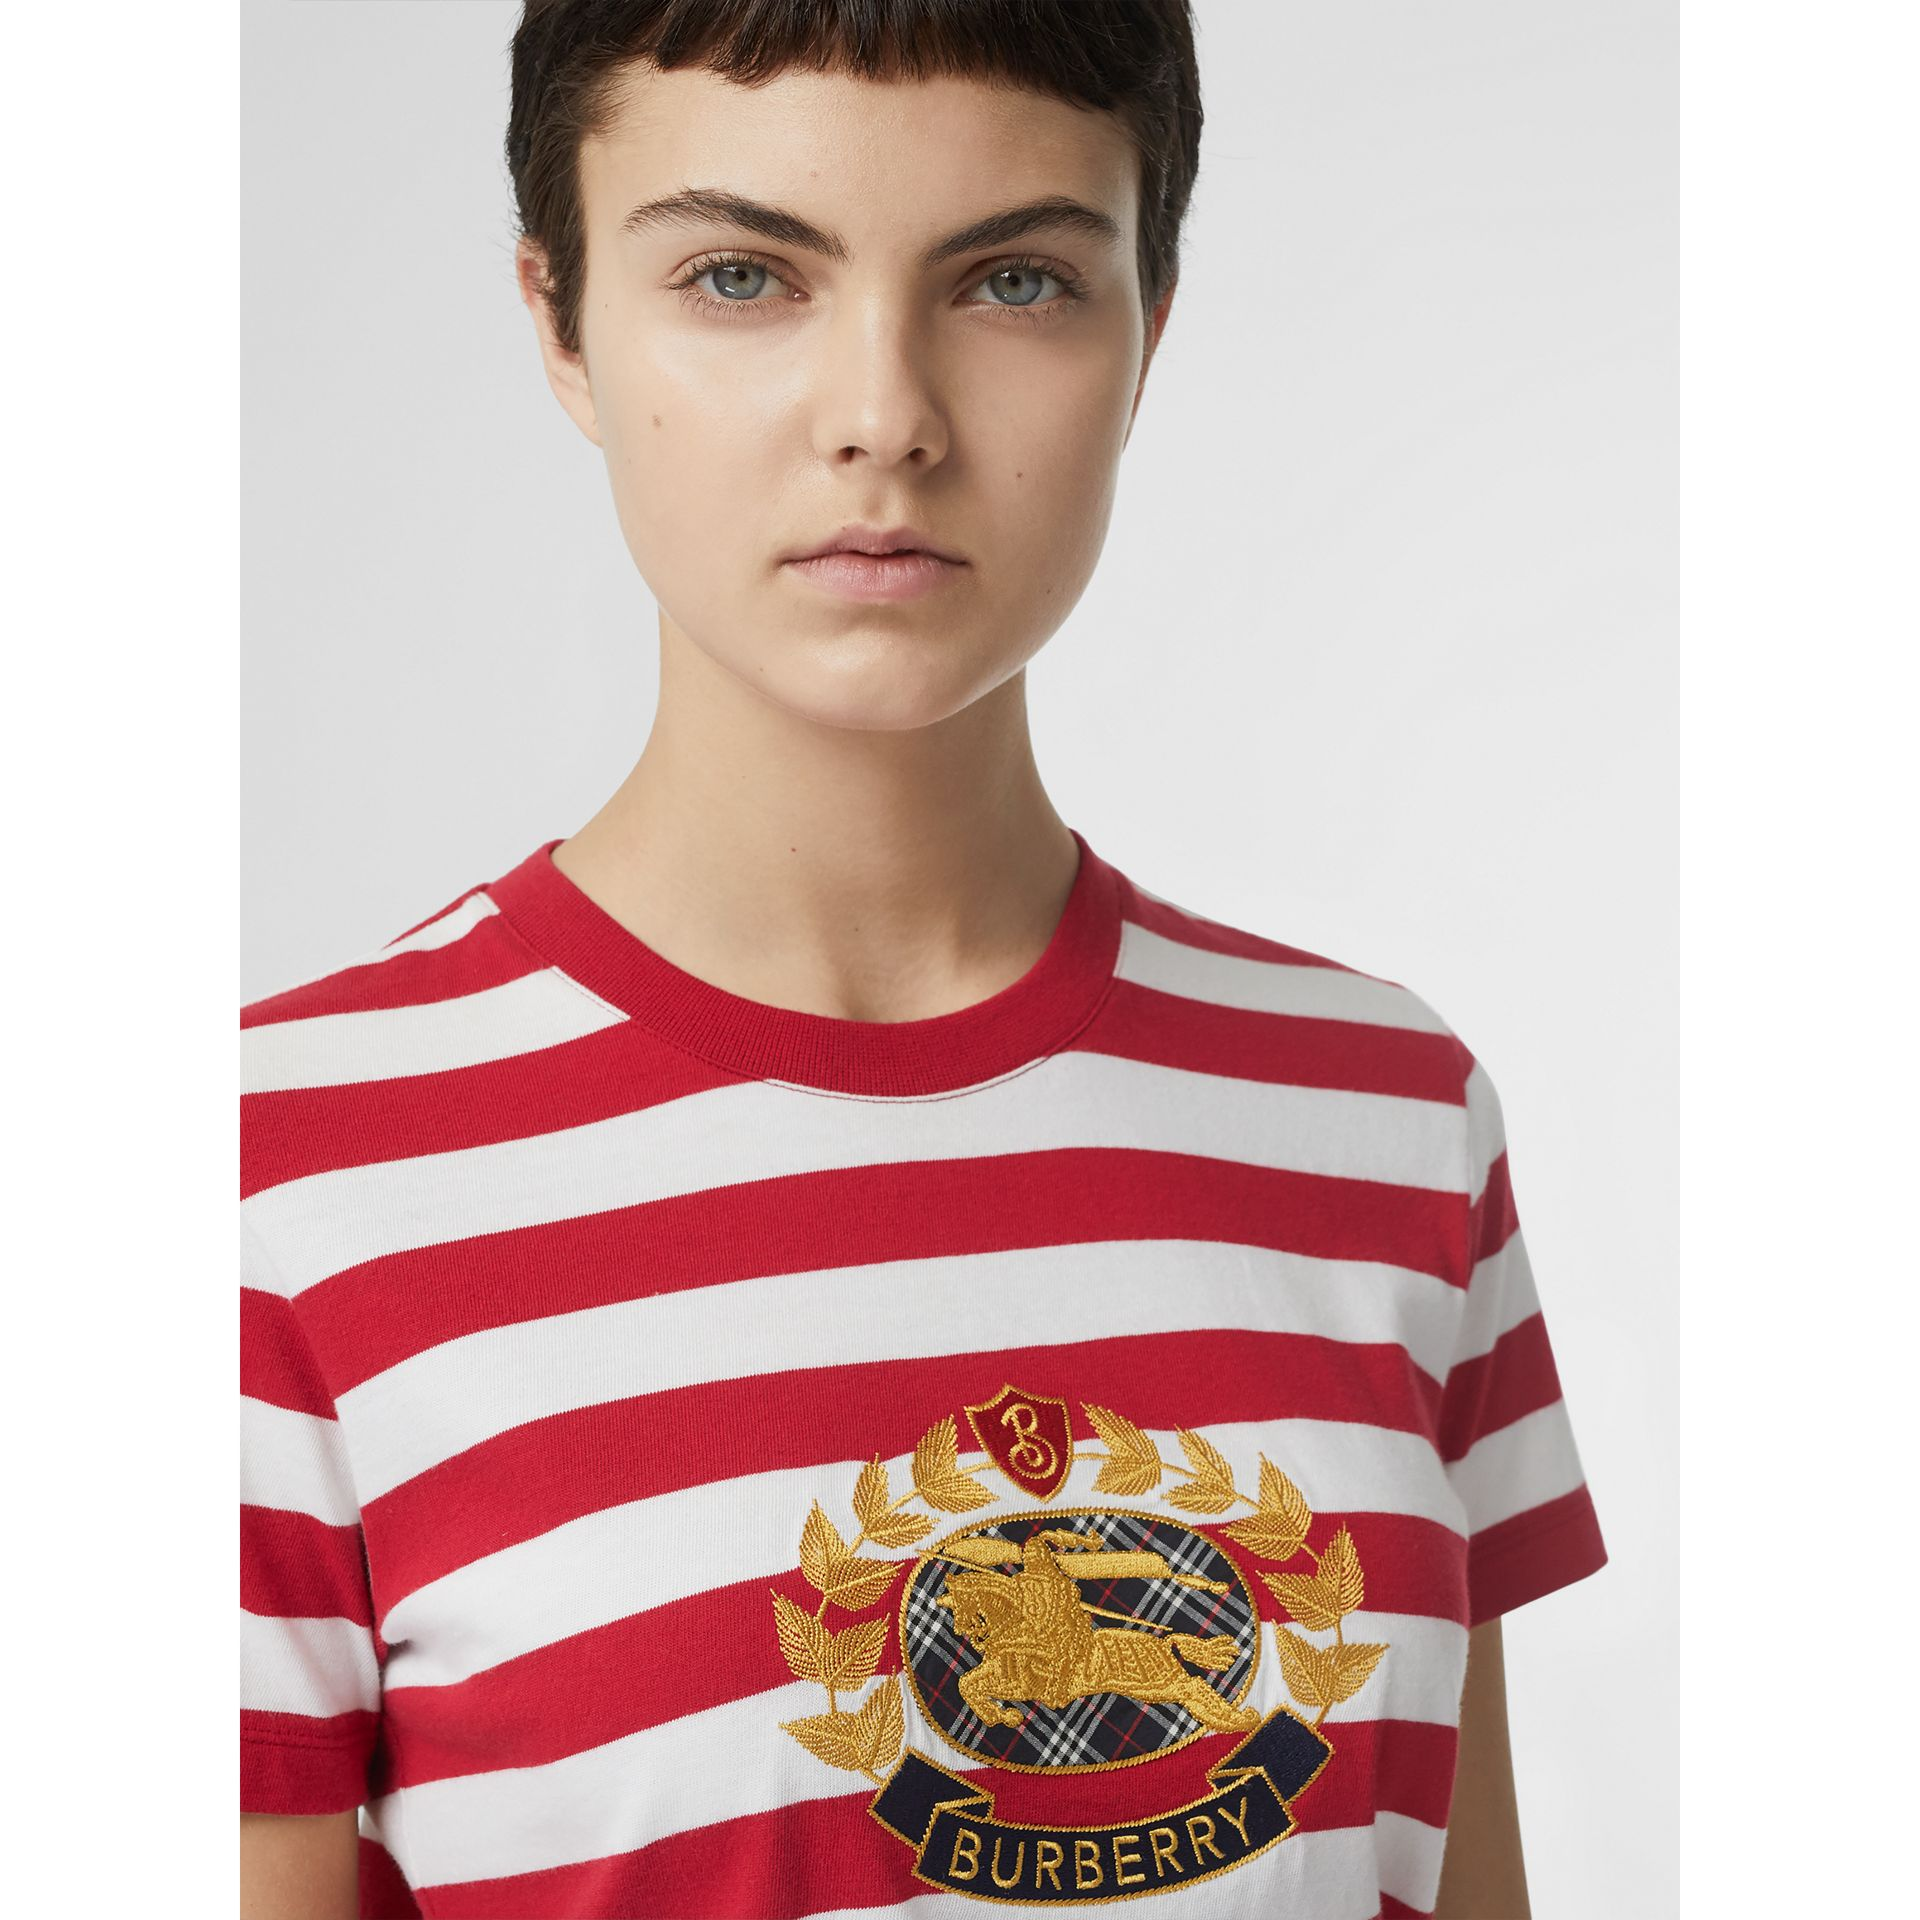 Crest Appliqué Striped Cotton T-shirt in Cadmium Red - Women | Burberry - gallery image 1